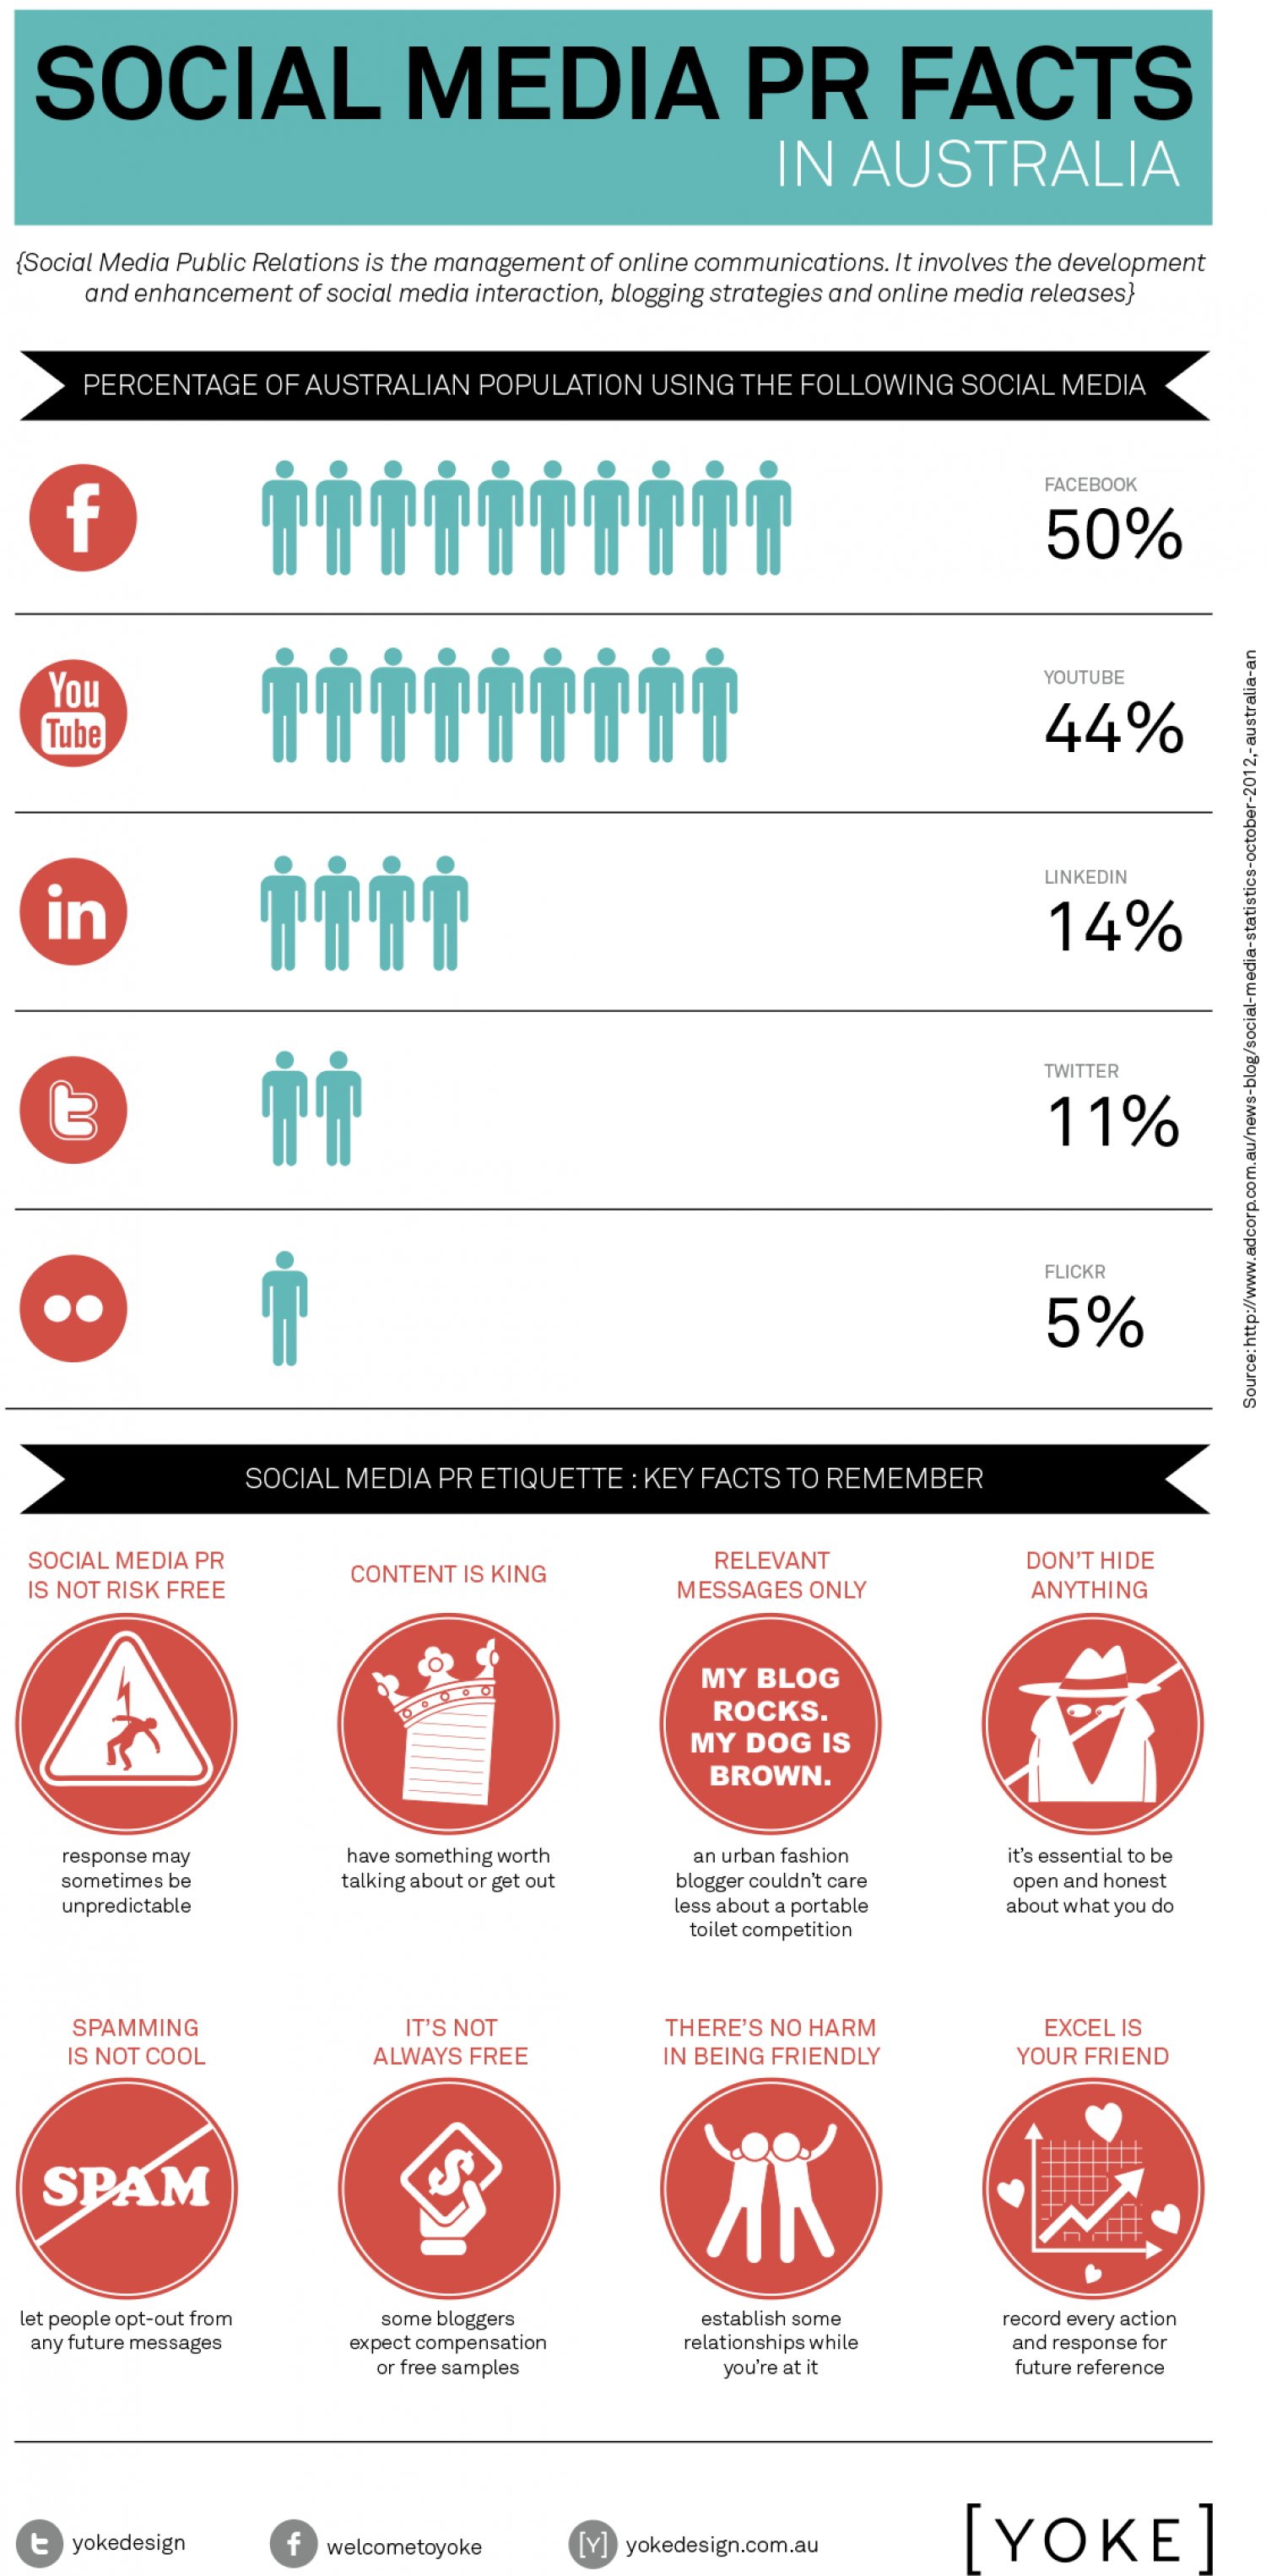 Social Media PR Facts Infographic